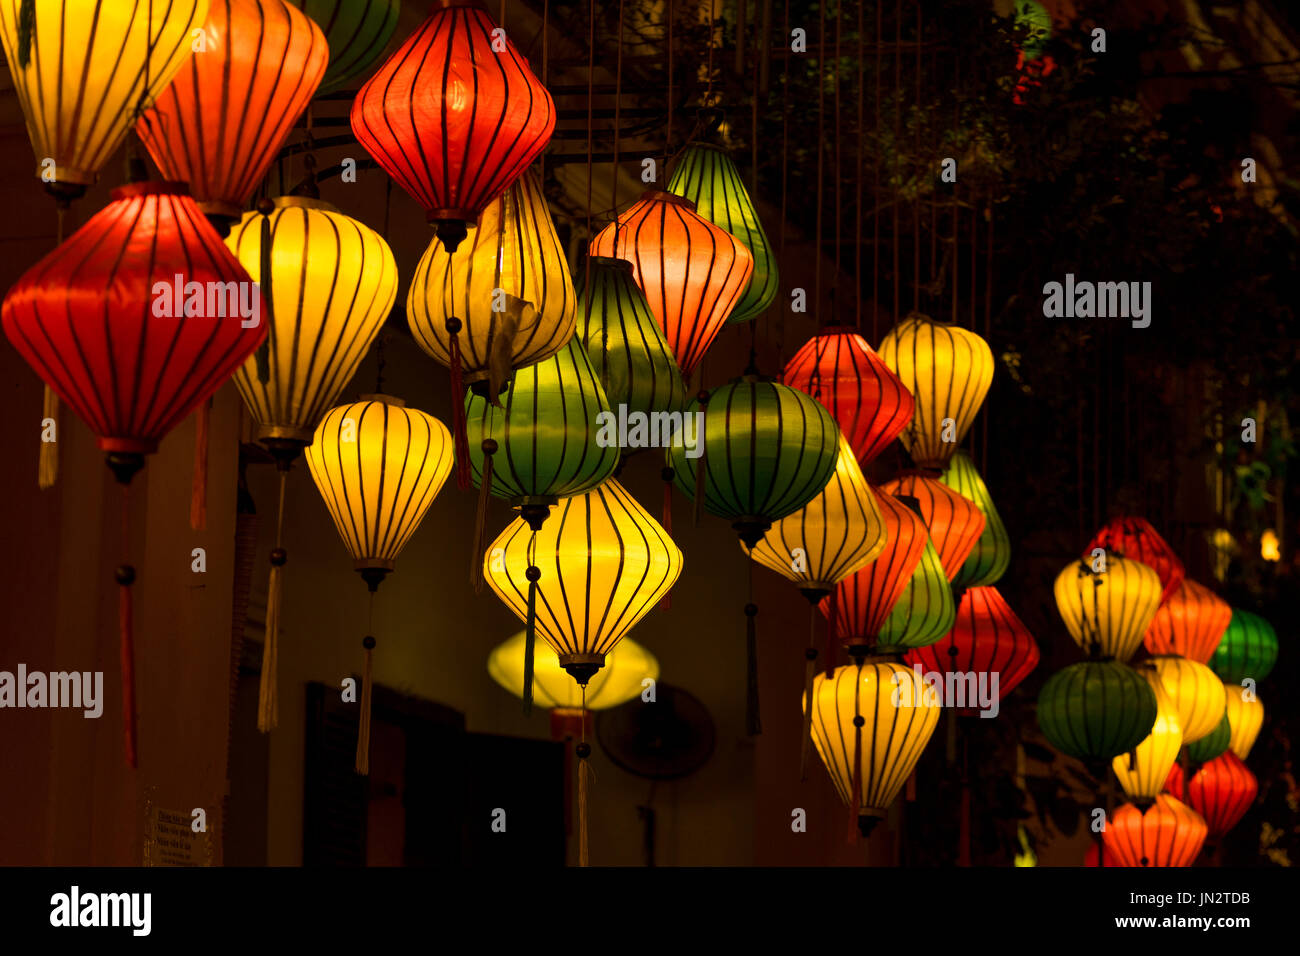 Colorful silk lanterns glowing in the evening in Hoi An, Vietnam, known for its lantern designs - Stock Image